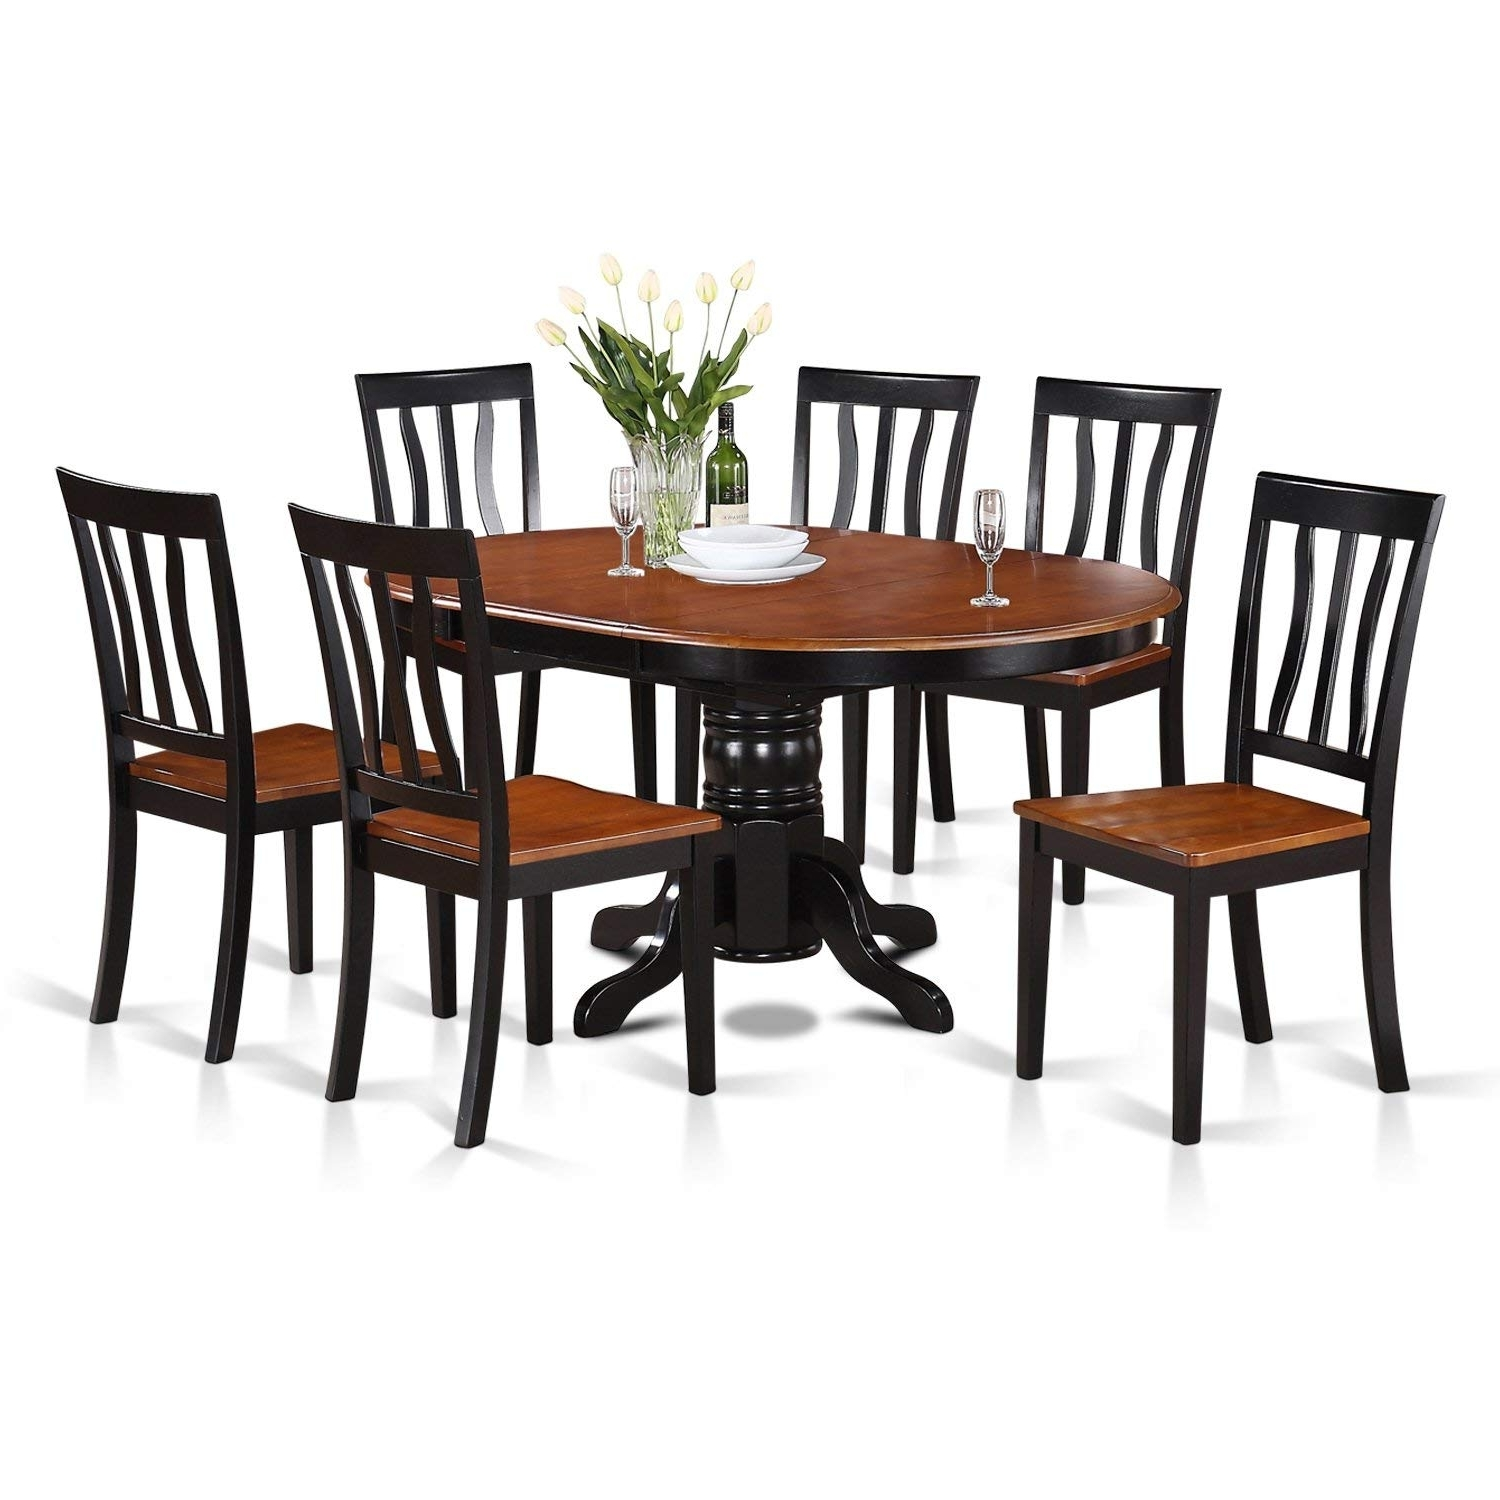 Favorite 6 Chair Dining Table Sets With Regard To Amazon: East West Furniture Avat7 Blk W 7 Piece Dining Table Set (View 11 of 25)